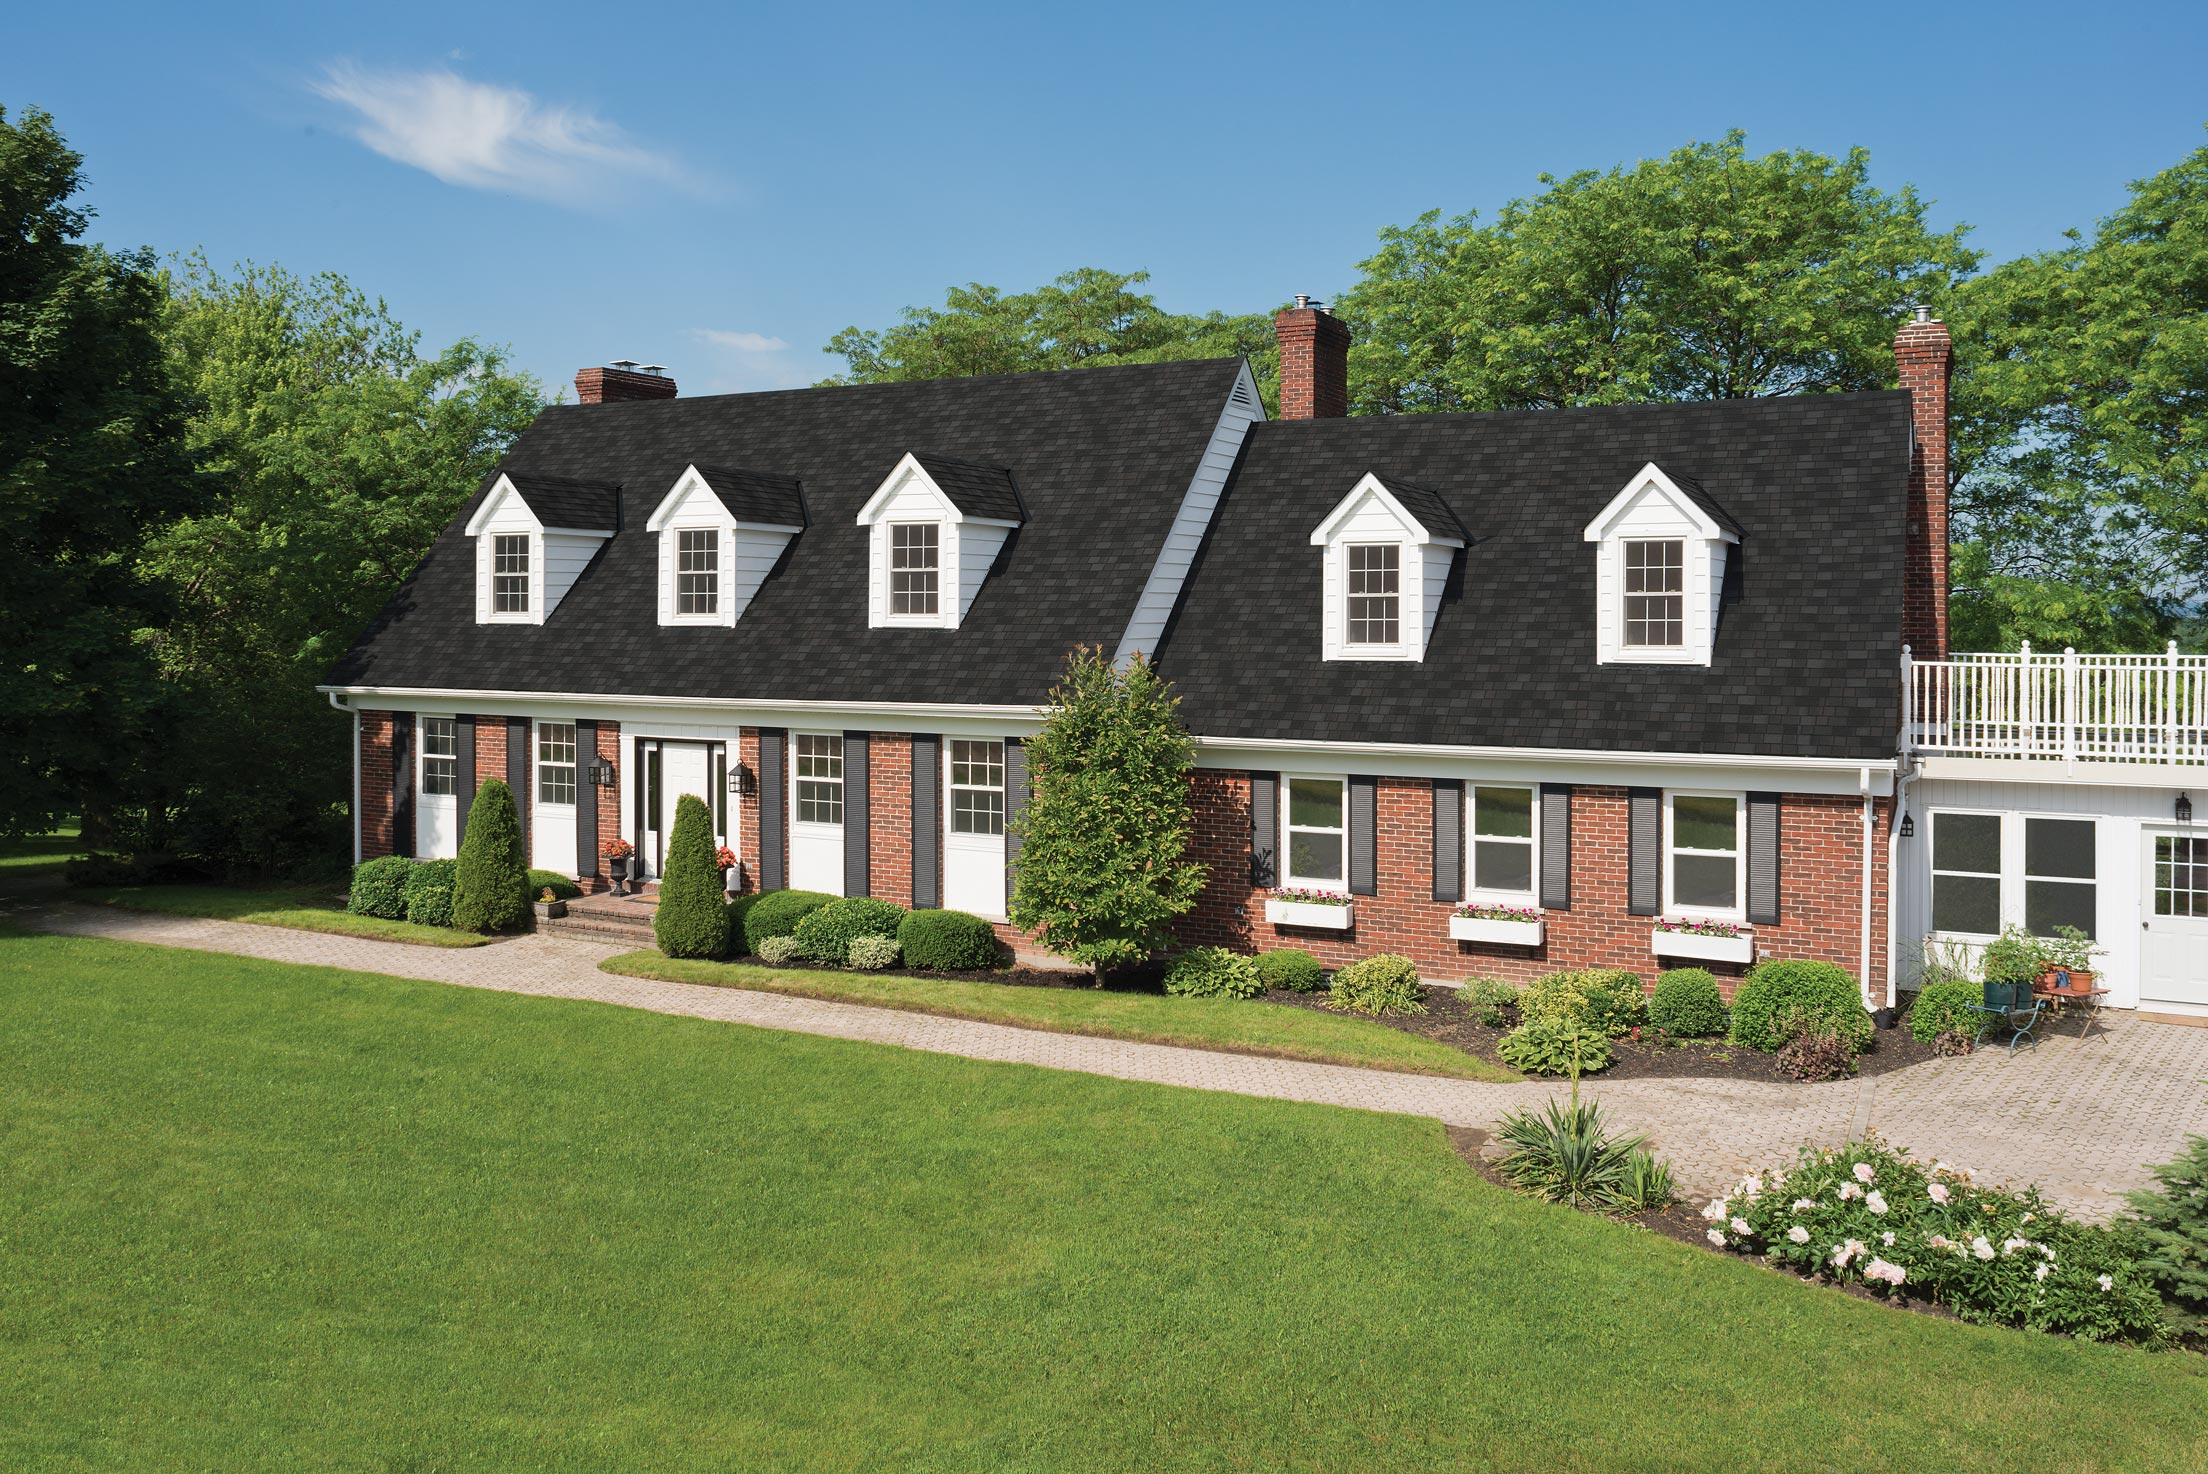 Terra Cotta brick house on a manicured lawn with Royal Estate Shadow Slate Shingles